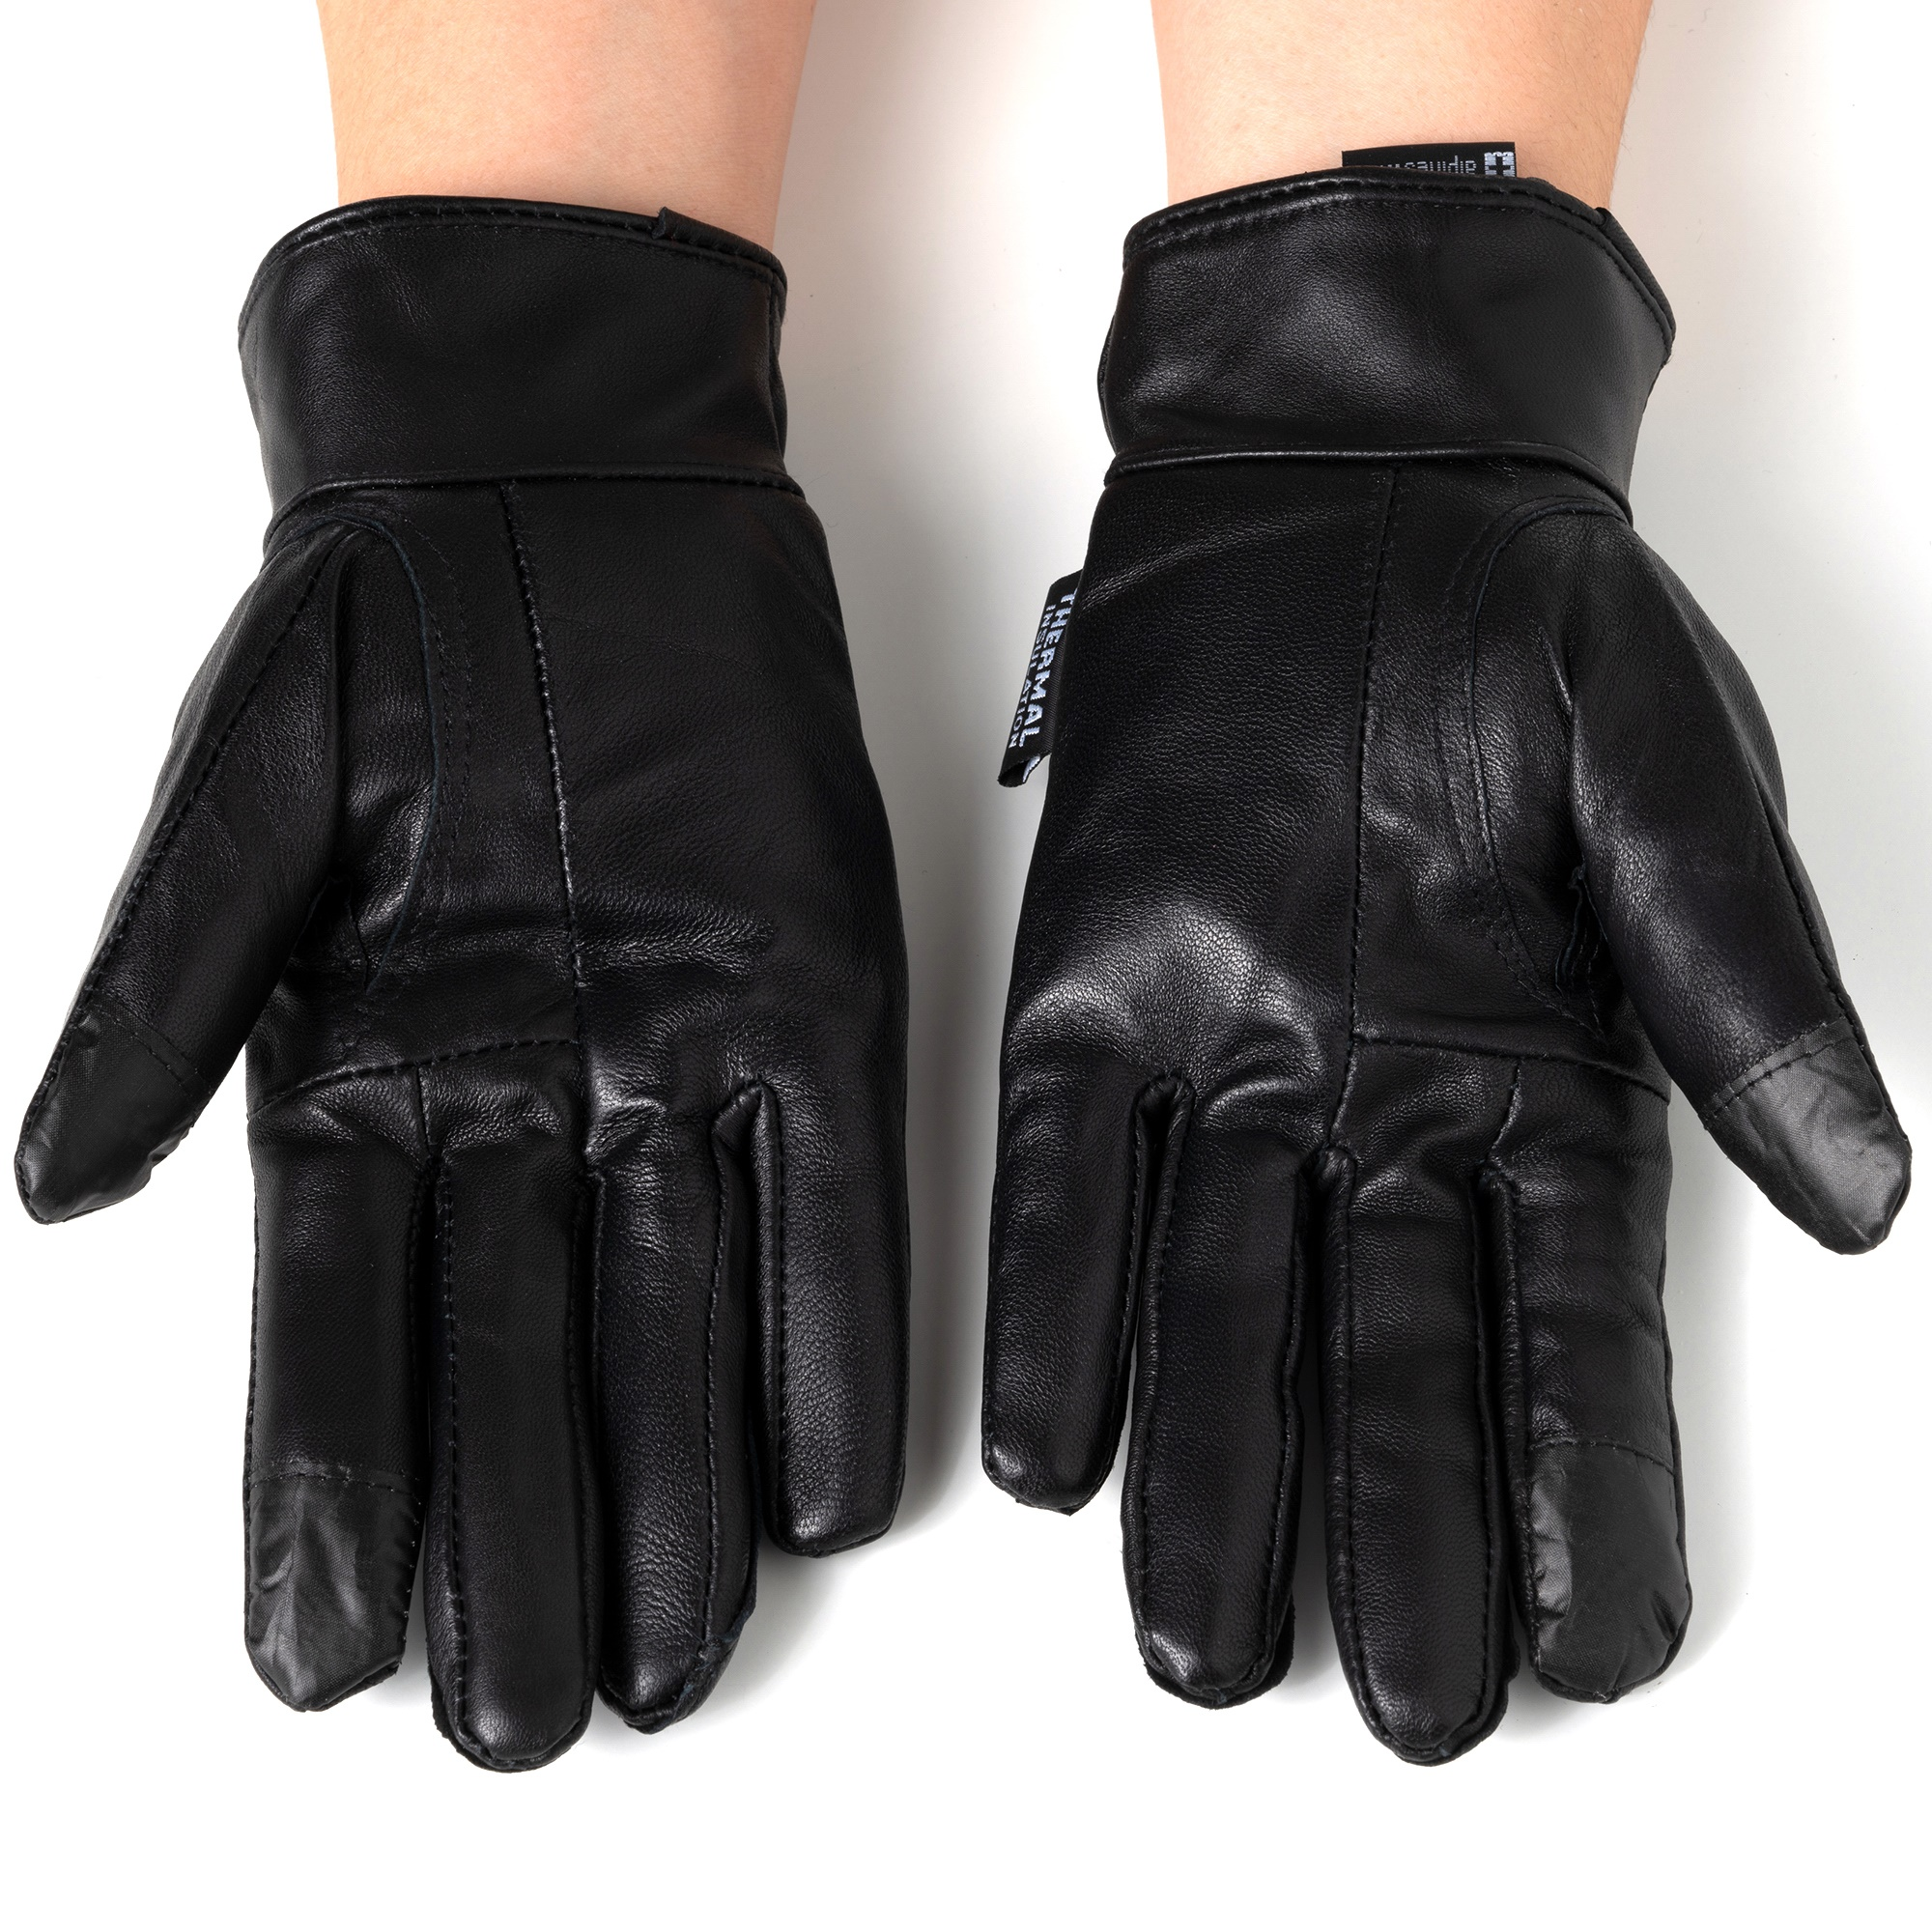 Alpine-Swiss-Womens-Touch-Screen-Gloves-Leather-Phone-Texting-Glove-Thermal-Warm thumbnail 14